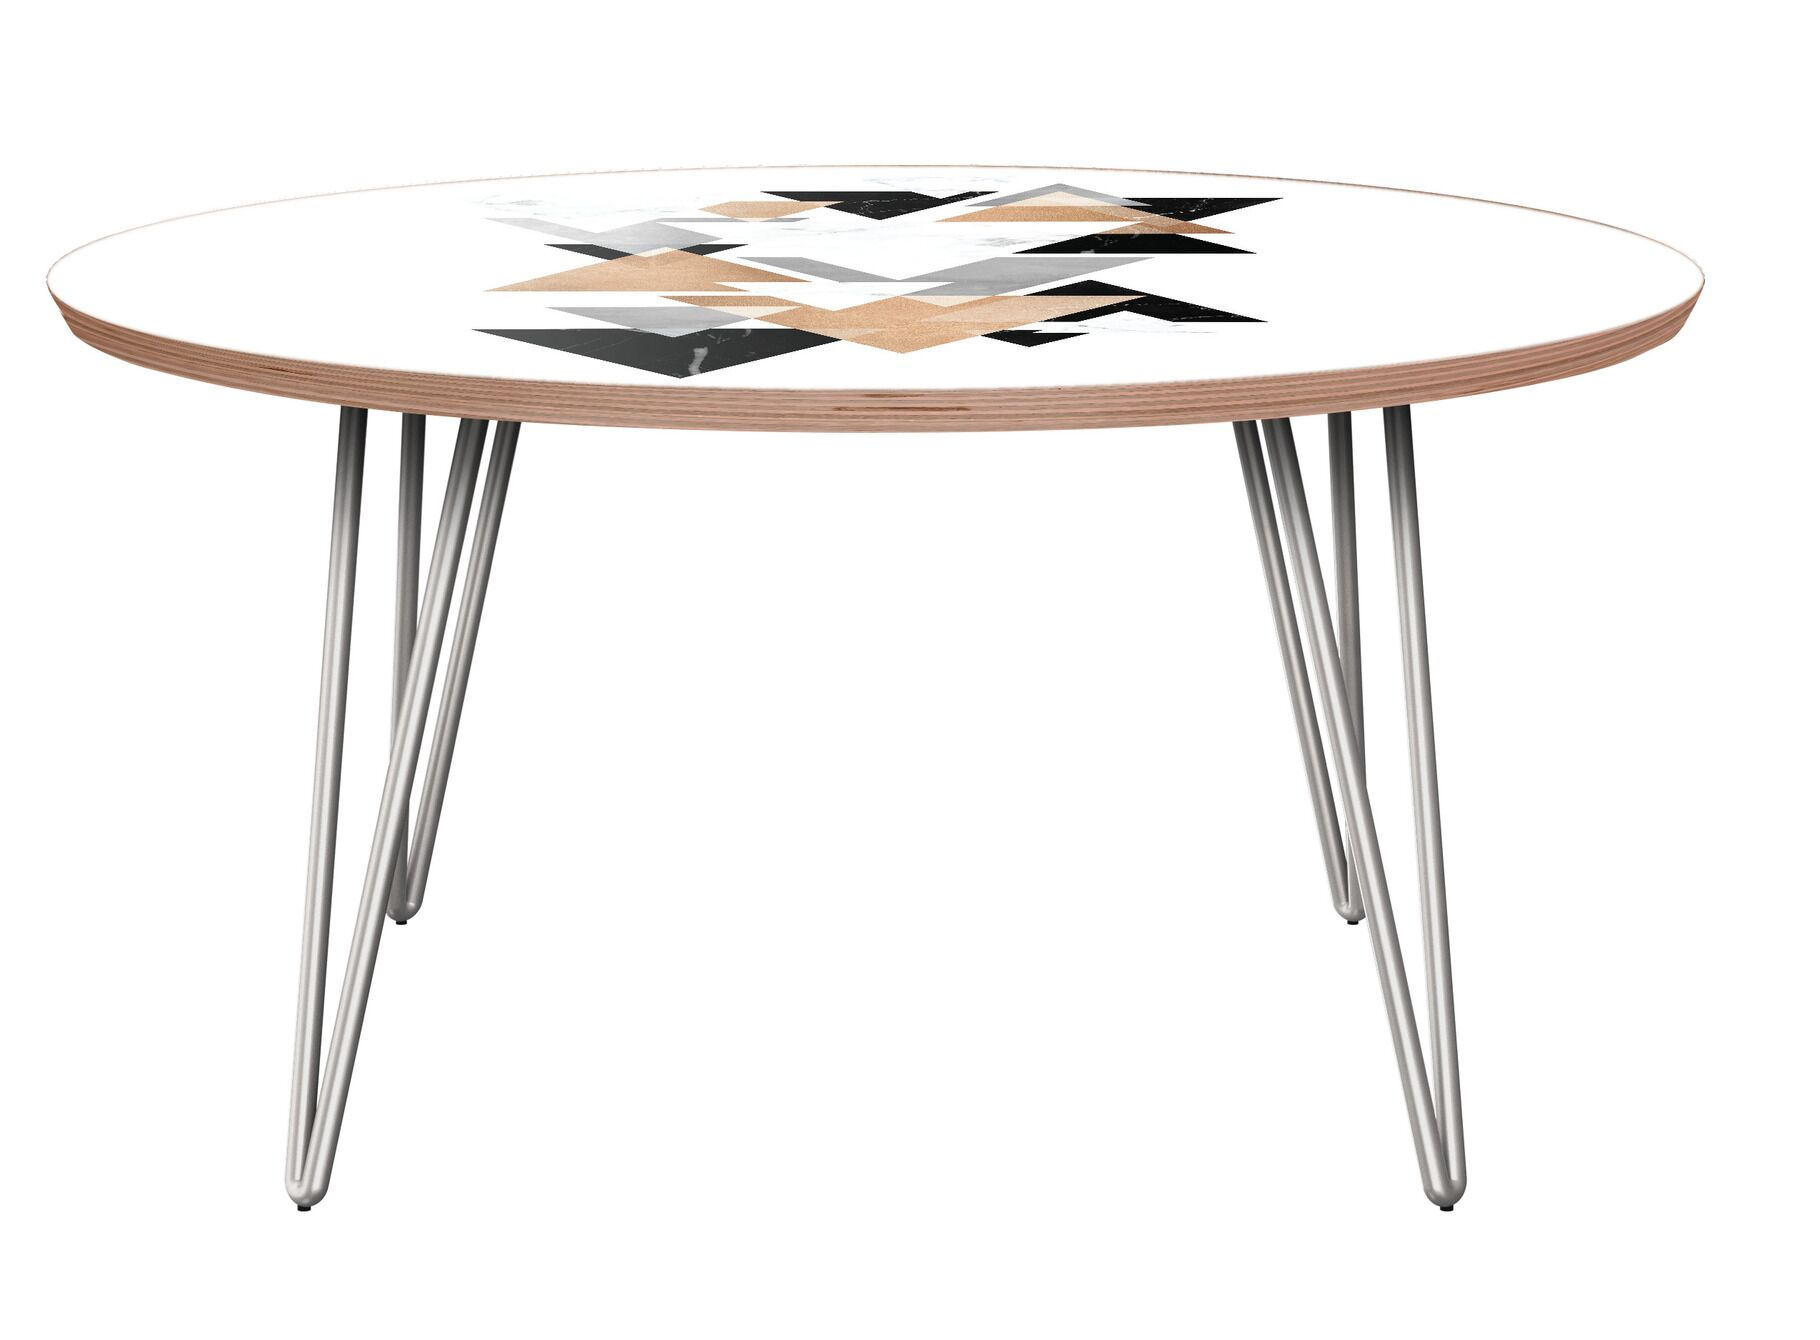 Laurens Coffee Table Table Base Color: Chrome, Table Top Color: Walnut